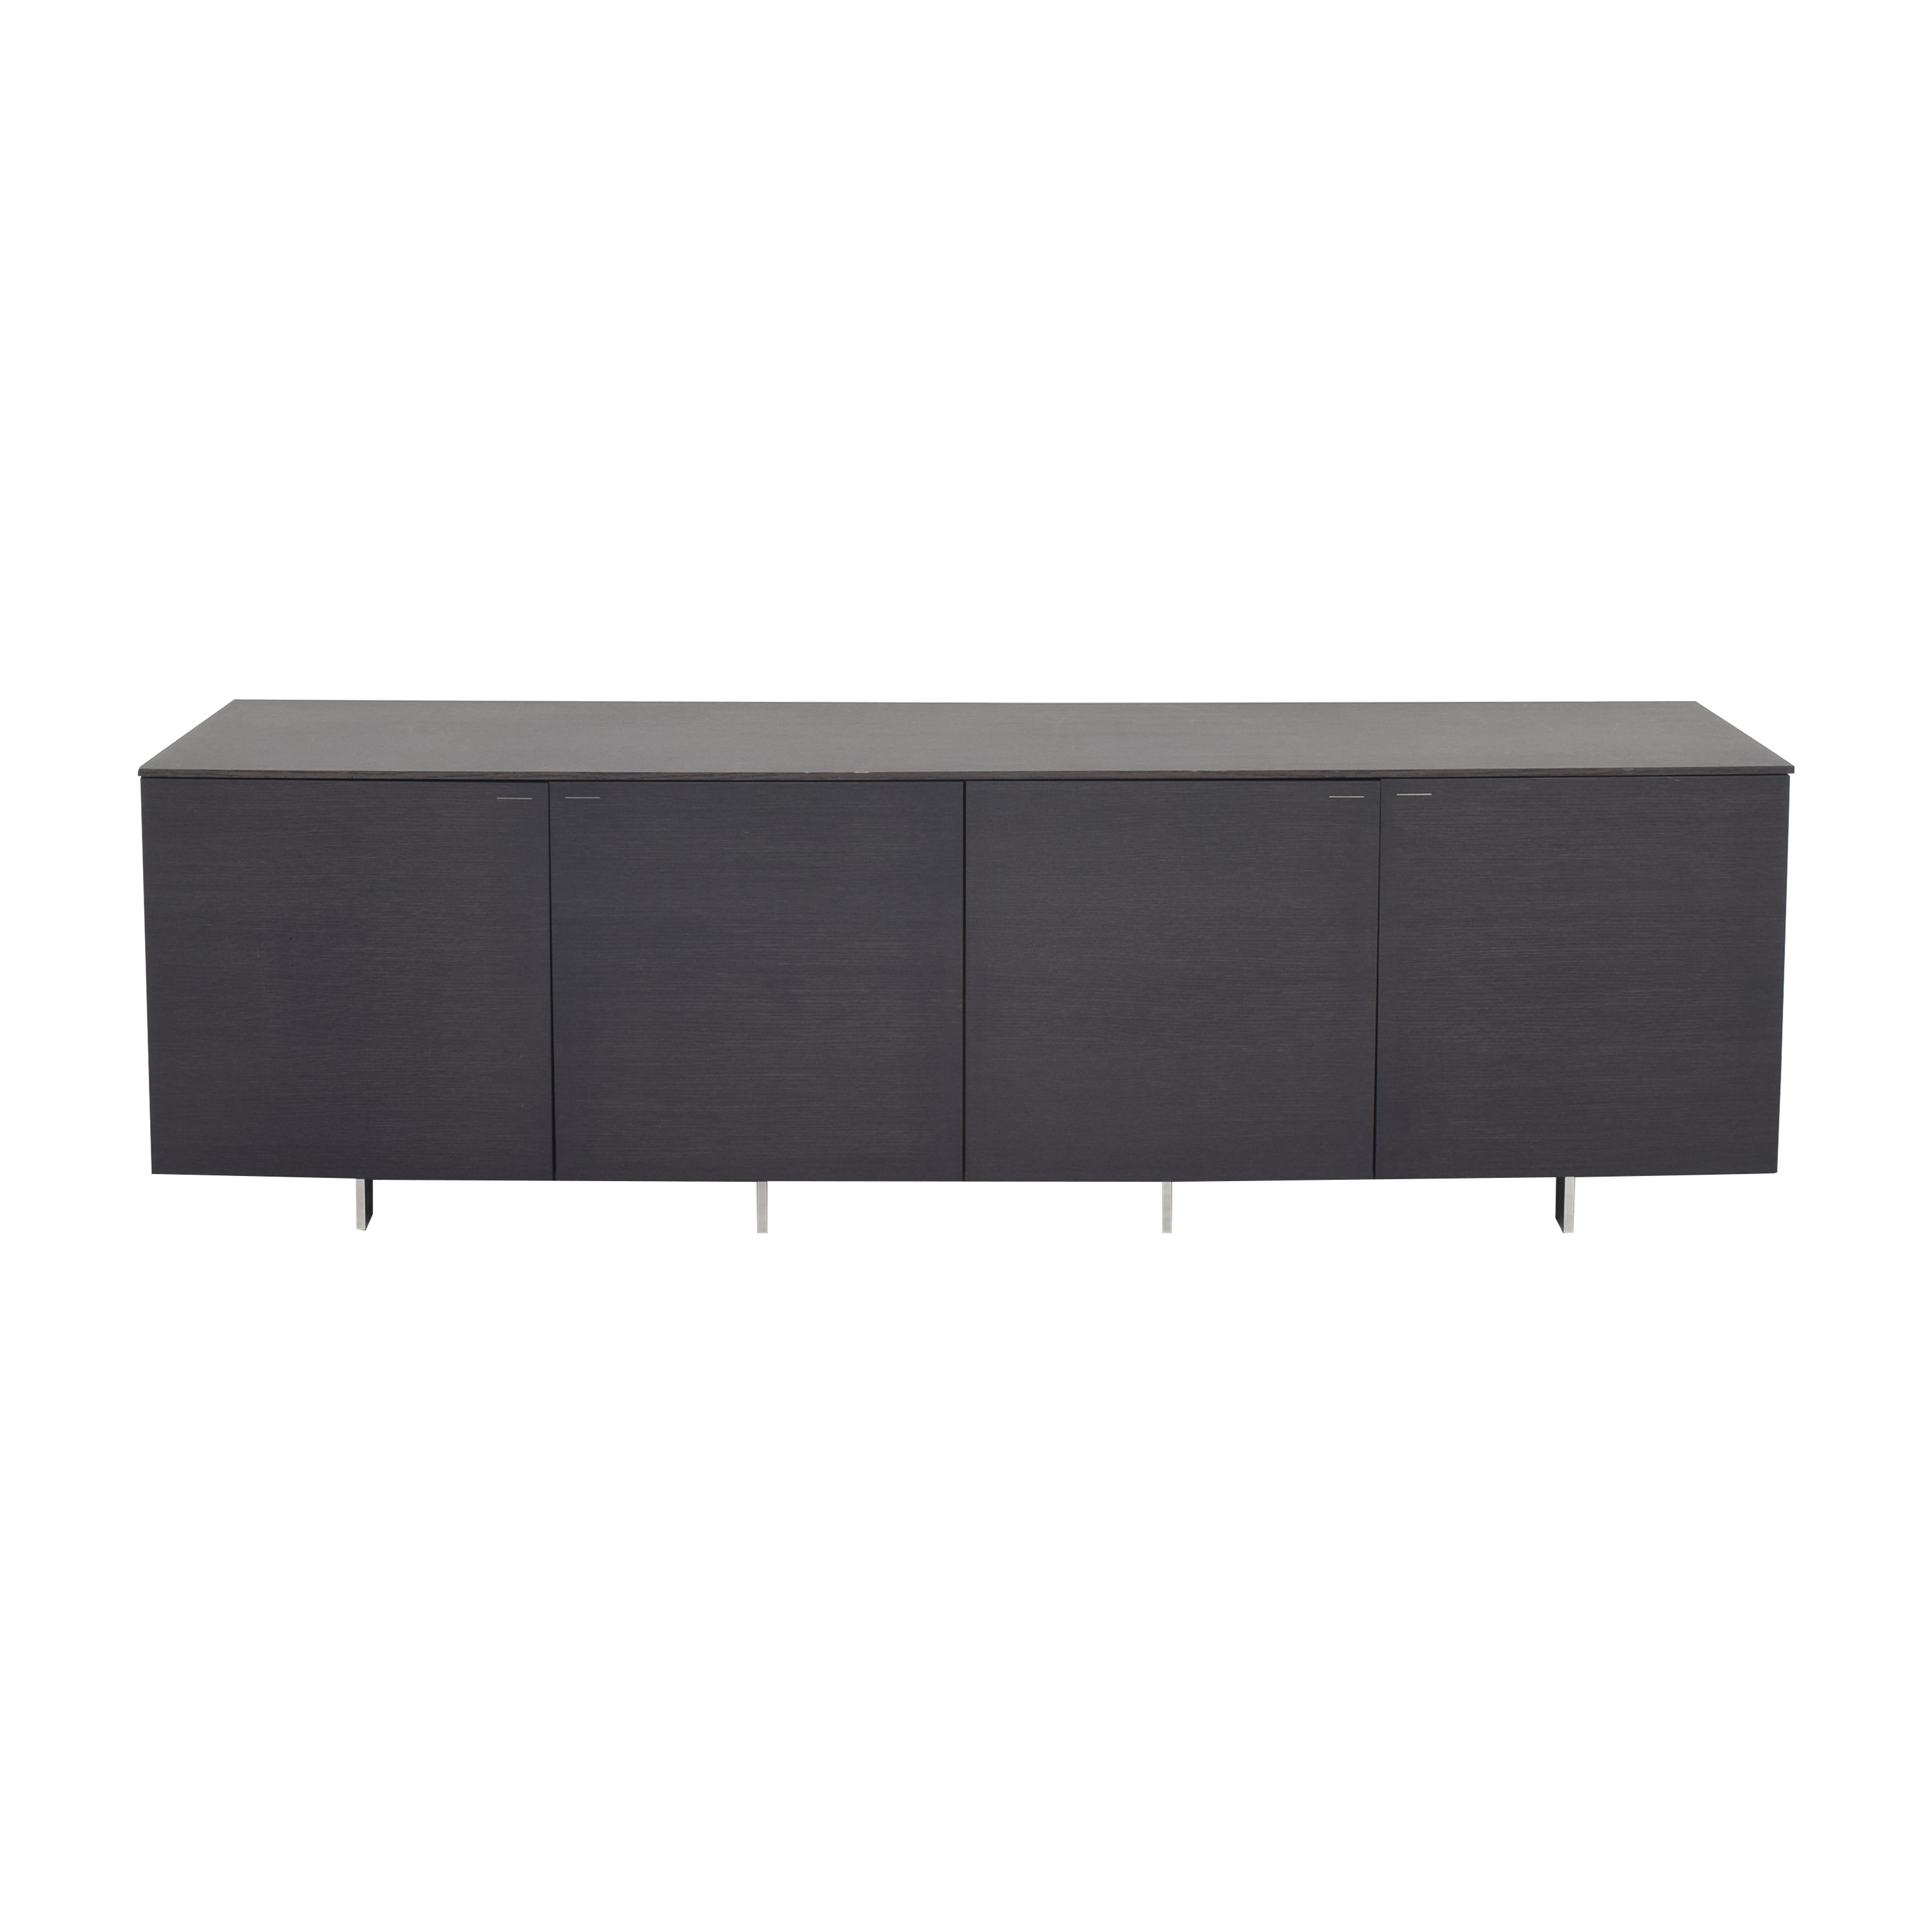 Molteni Molteni Four Door Modern Sideboard second hand